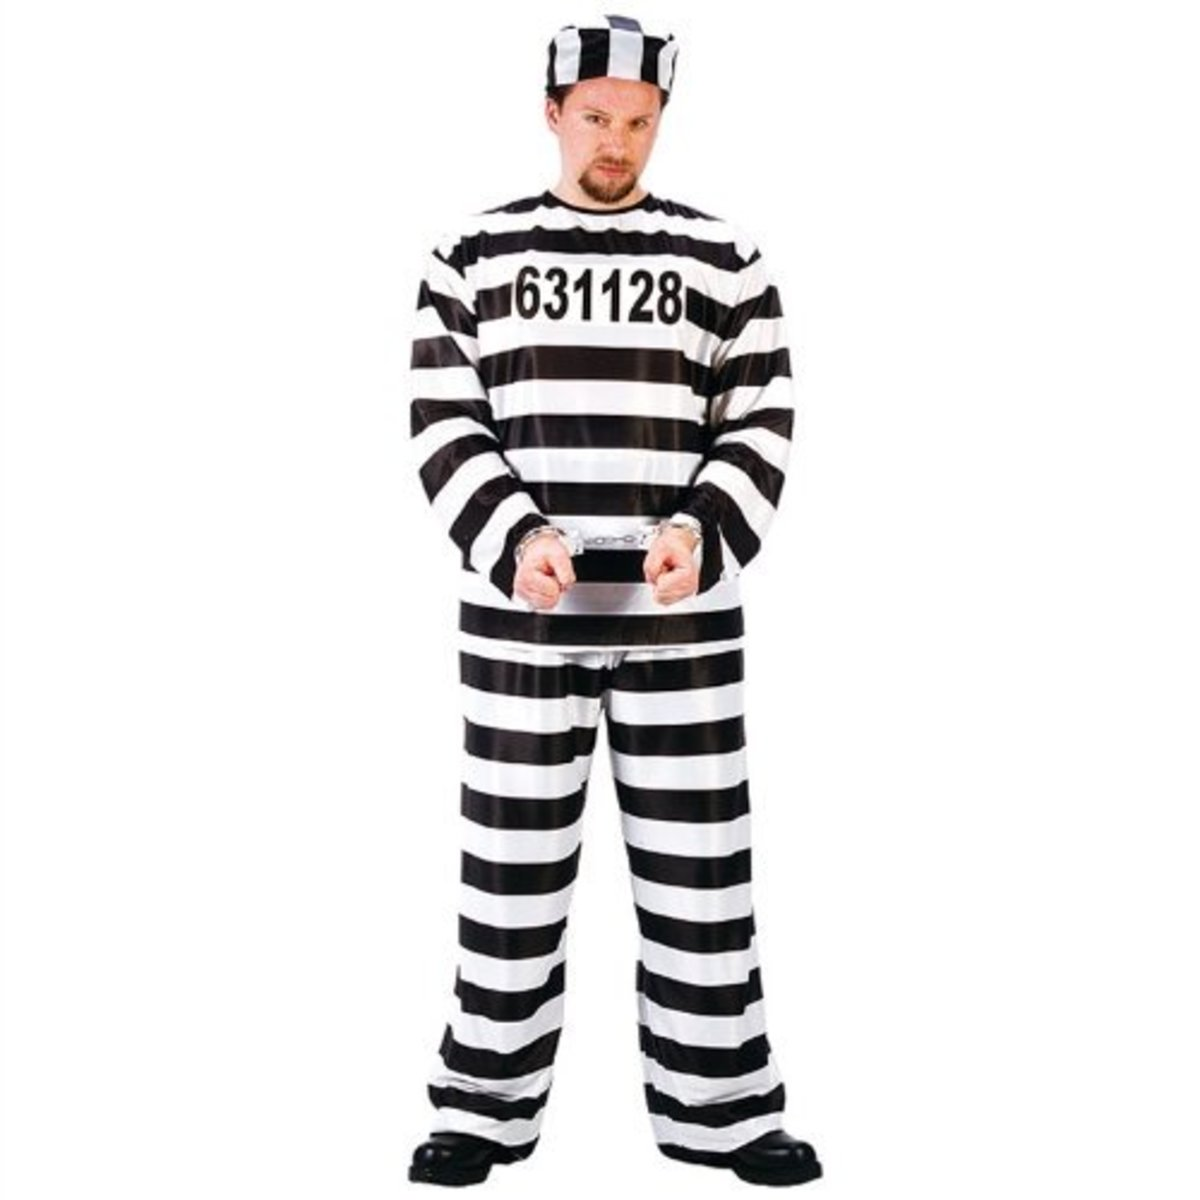 Costume ideas starting with the letter m holidappy convict costume solutioingenieria Gallery